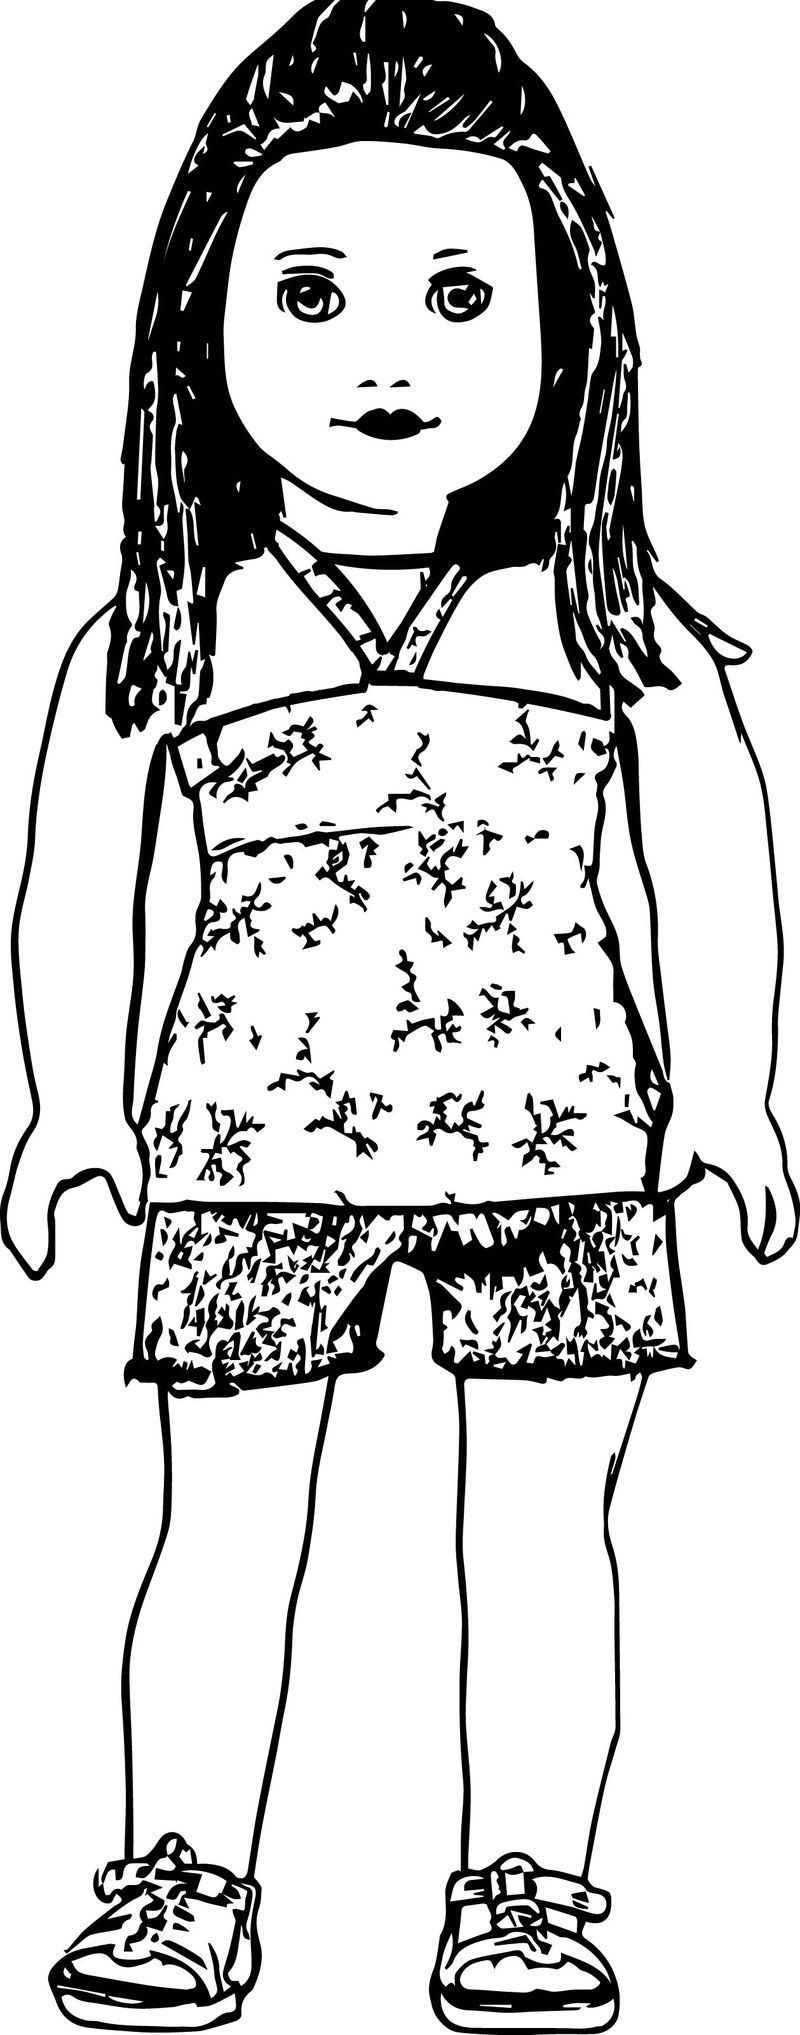 american girl coloring sheets coloring pages american girl doll coloring pages for kids sheets american girl coloring